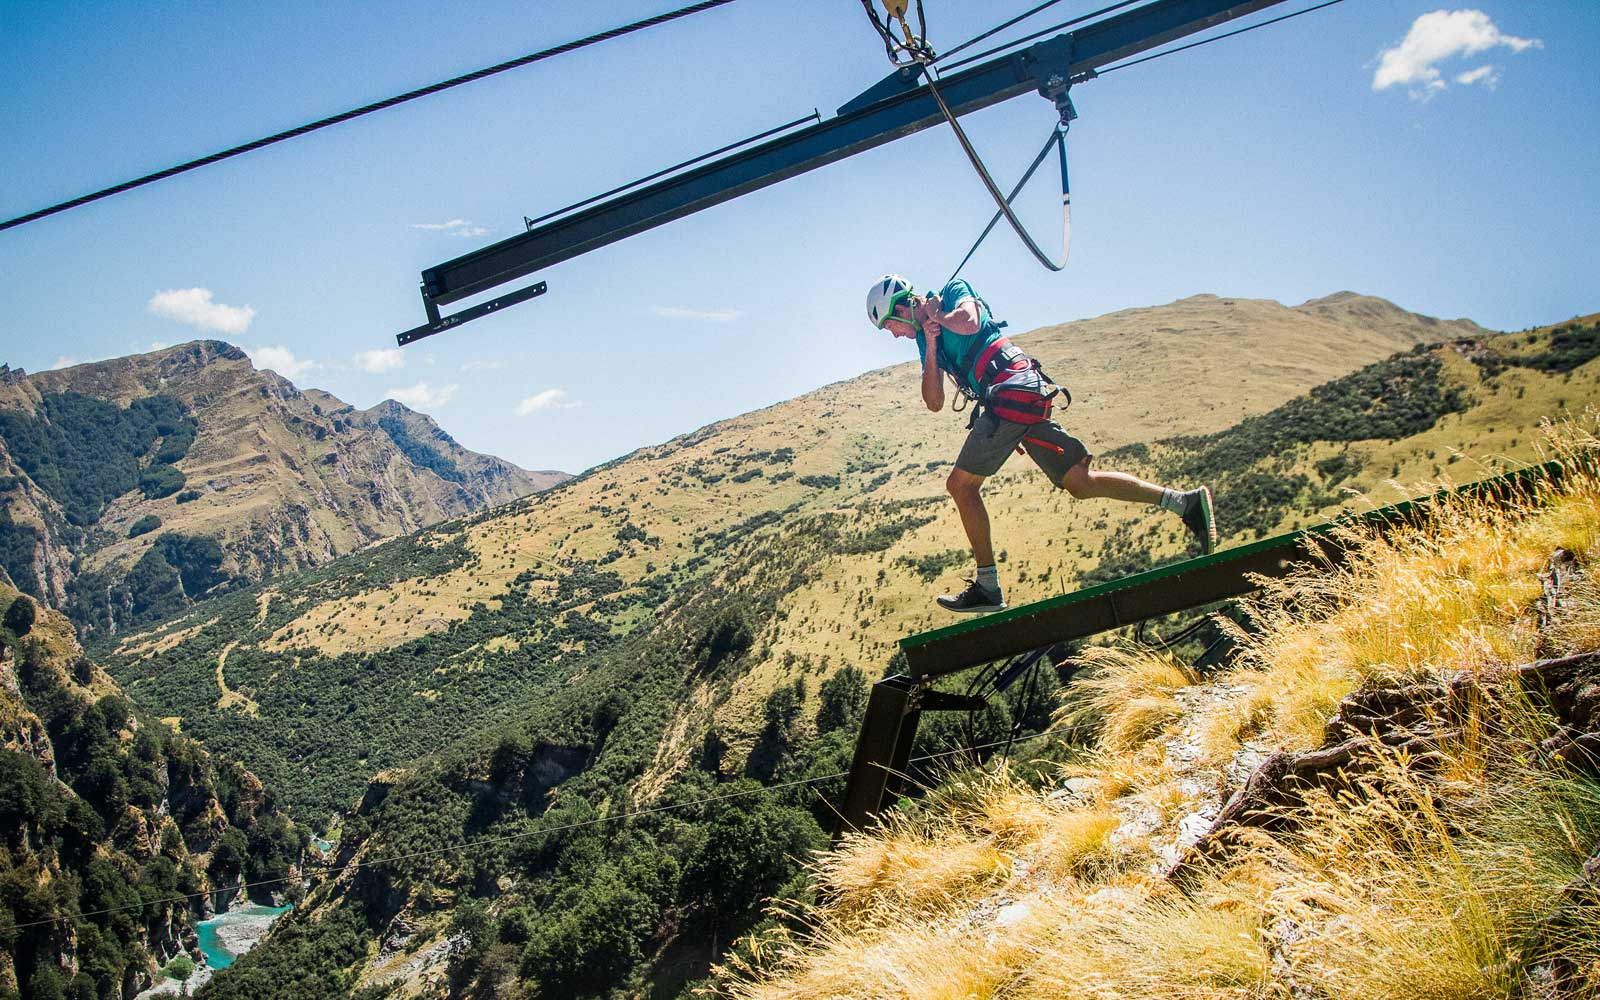 Shotover Canyon Swing and Canyon Fox New Zealand